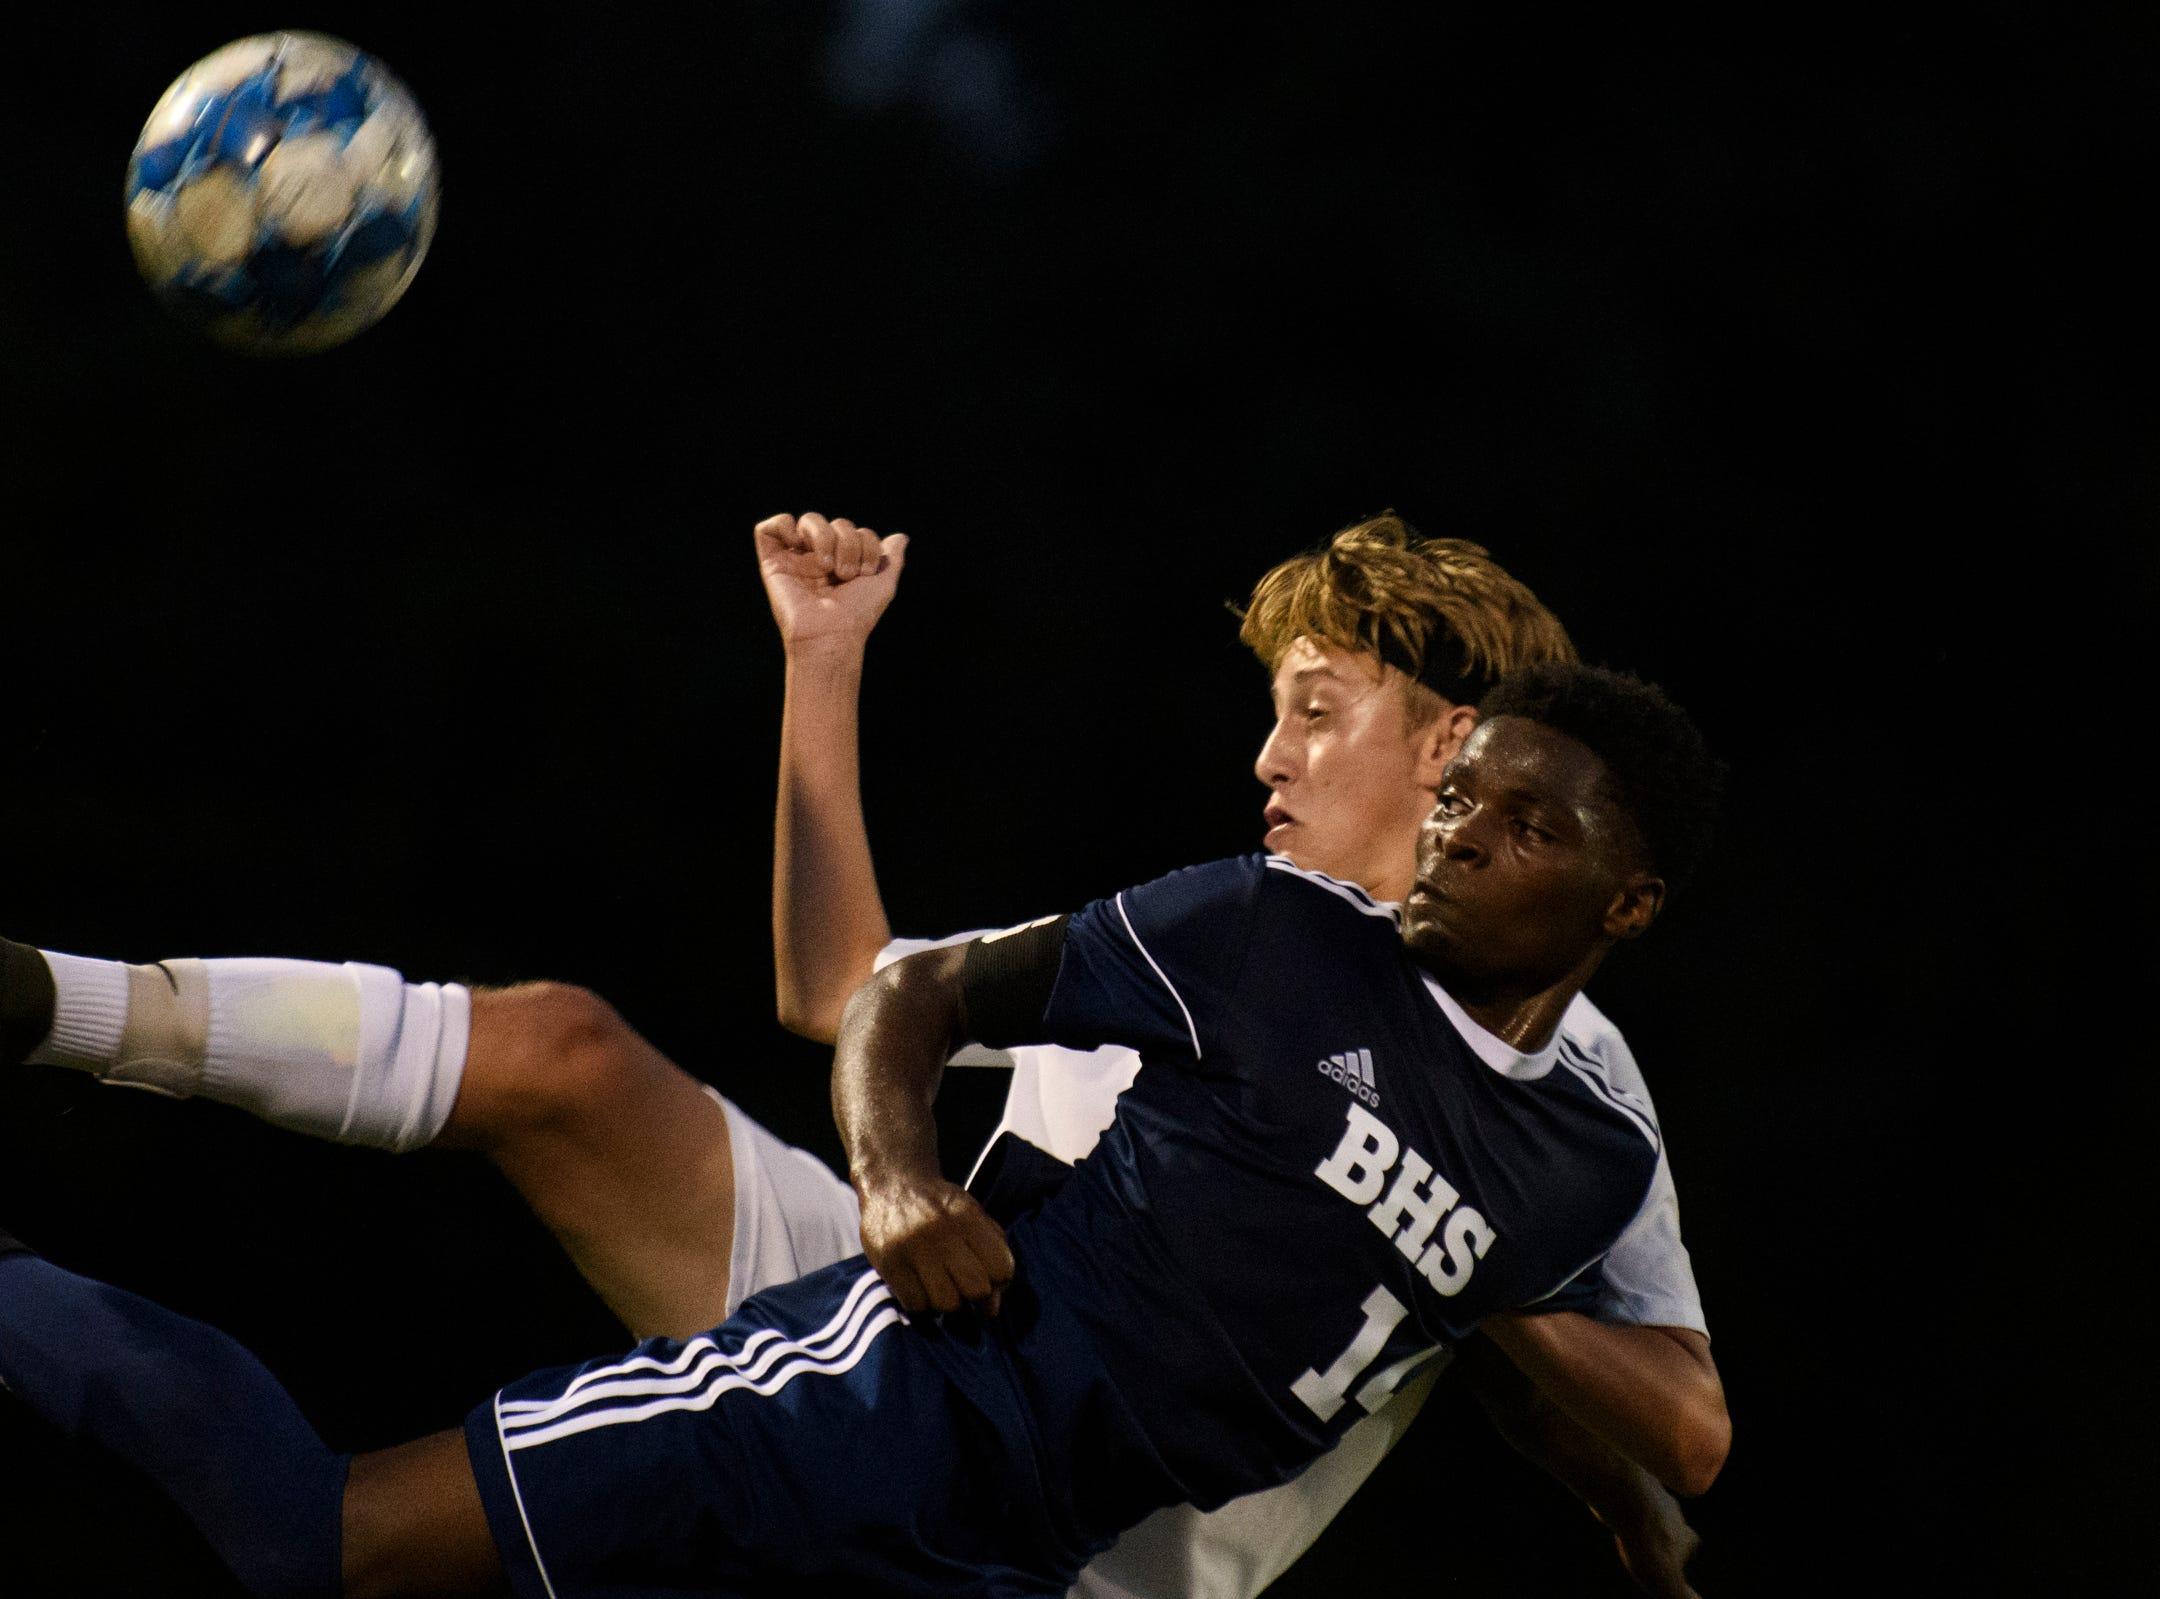 Burlington's Hussein Mubarak (14) and Stowe's Jack Seivwrigth (10) battles for the ball during the boys soccer game between Stowe and Burlington at Buck Hard field on Wednesday night September 5, 2018 in Burlington.